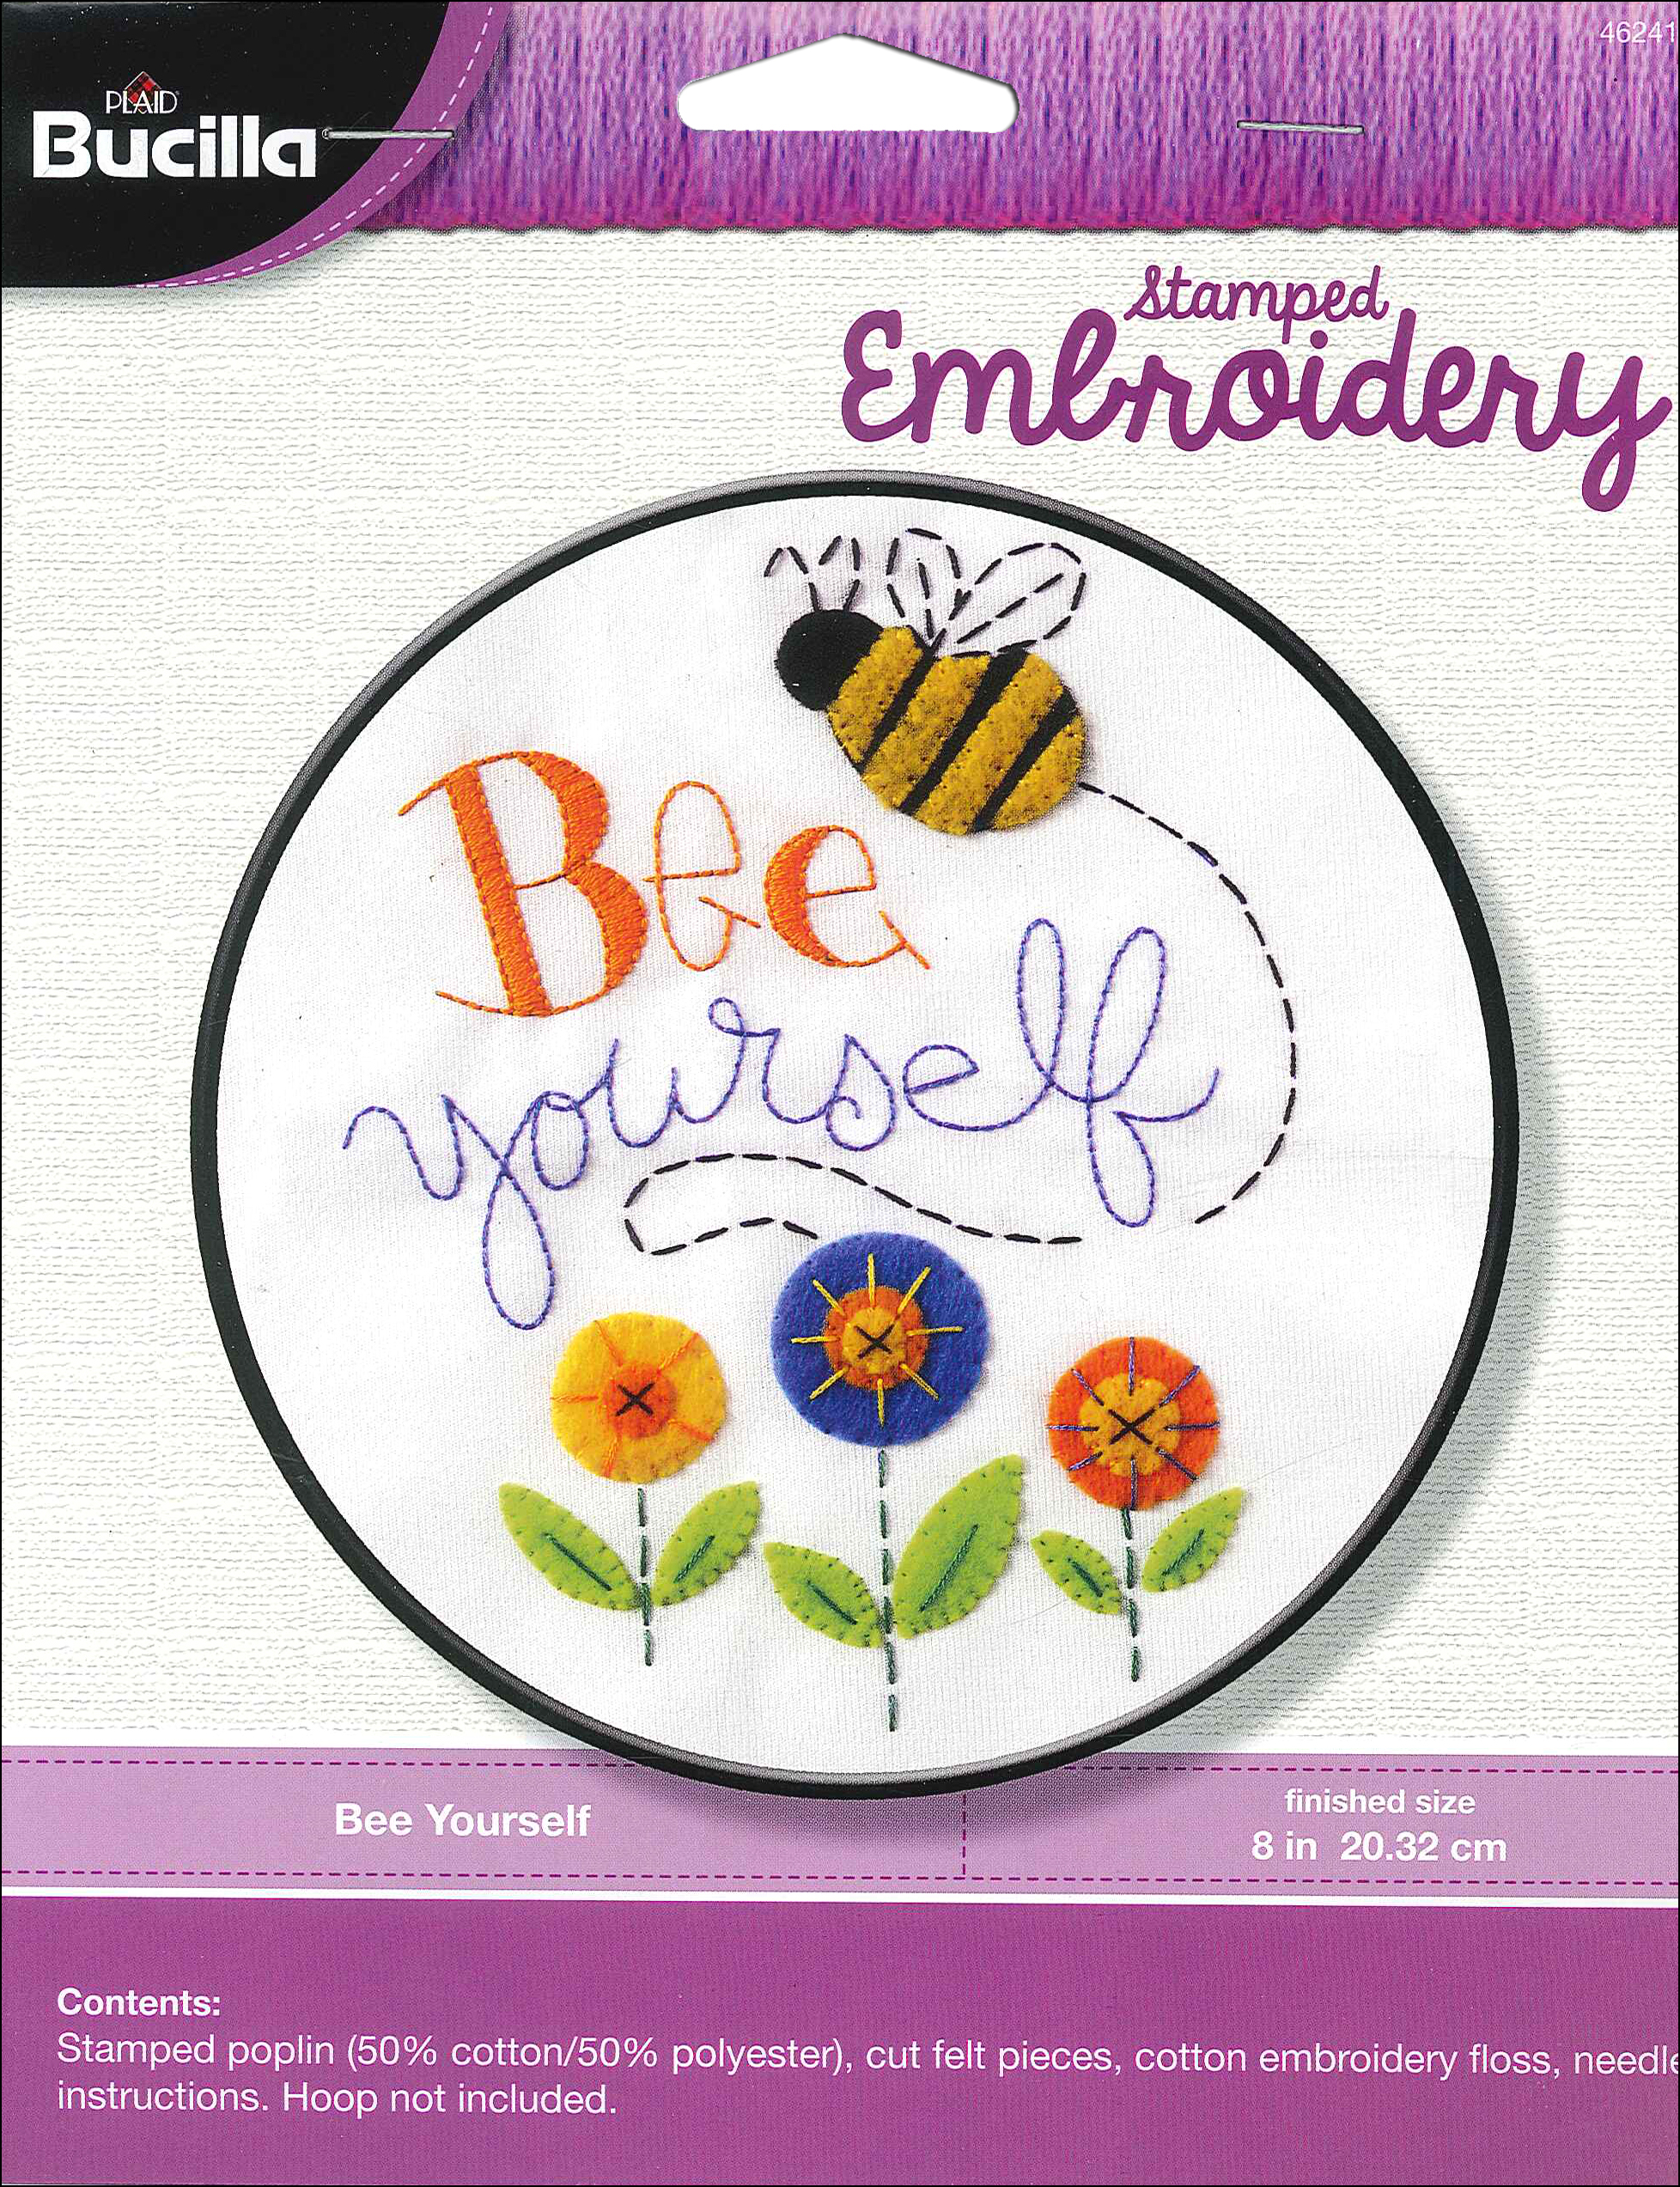 Bucilla Stamped Embroidery Kit Bee Yourself Createforless